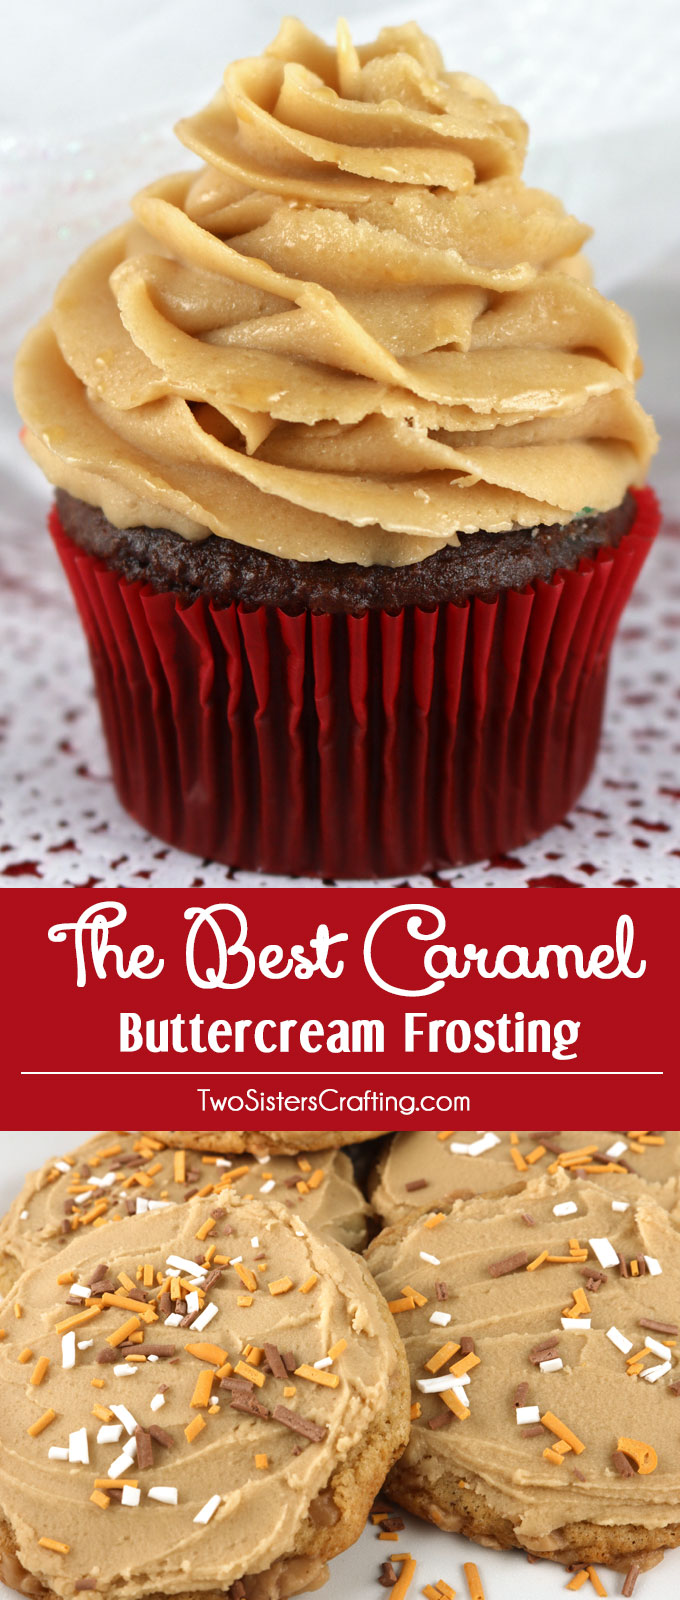 Easy Caramel Icing Recipe